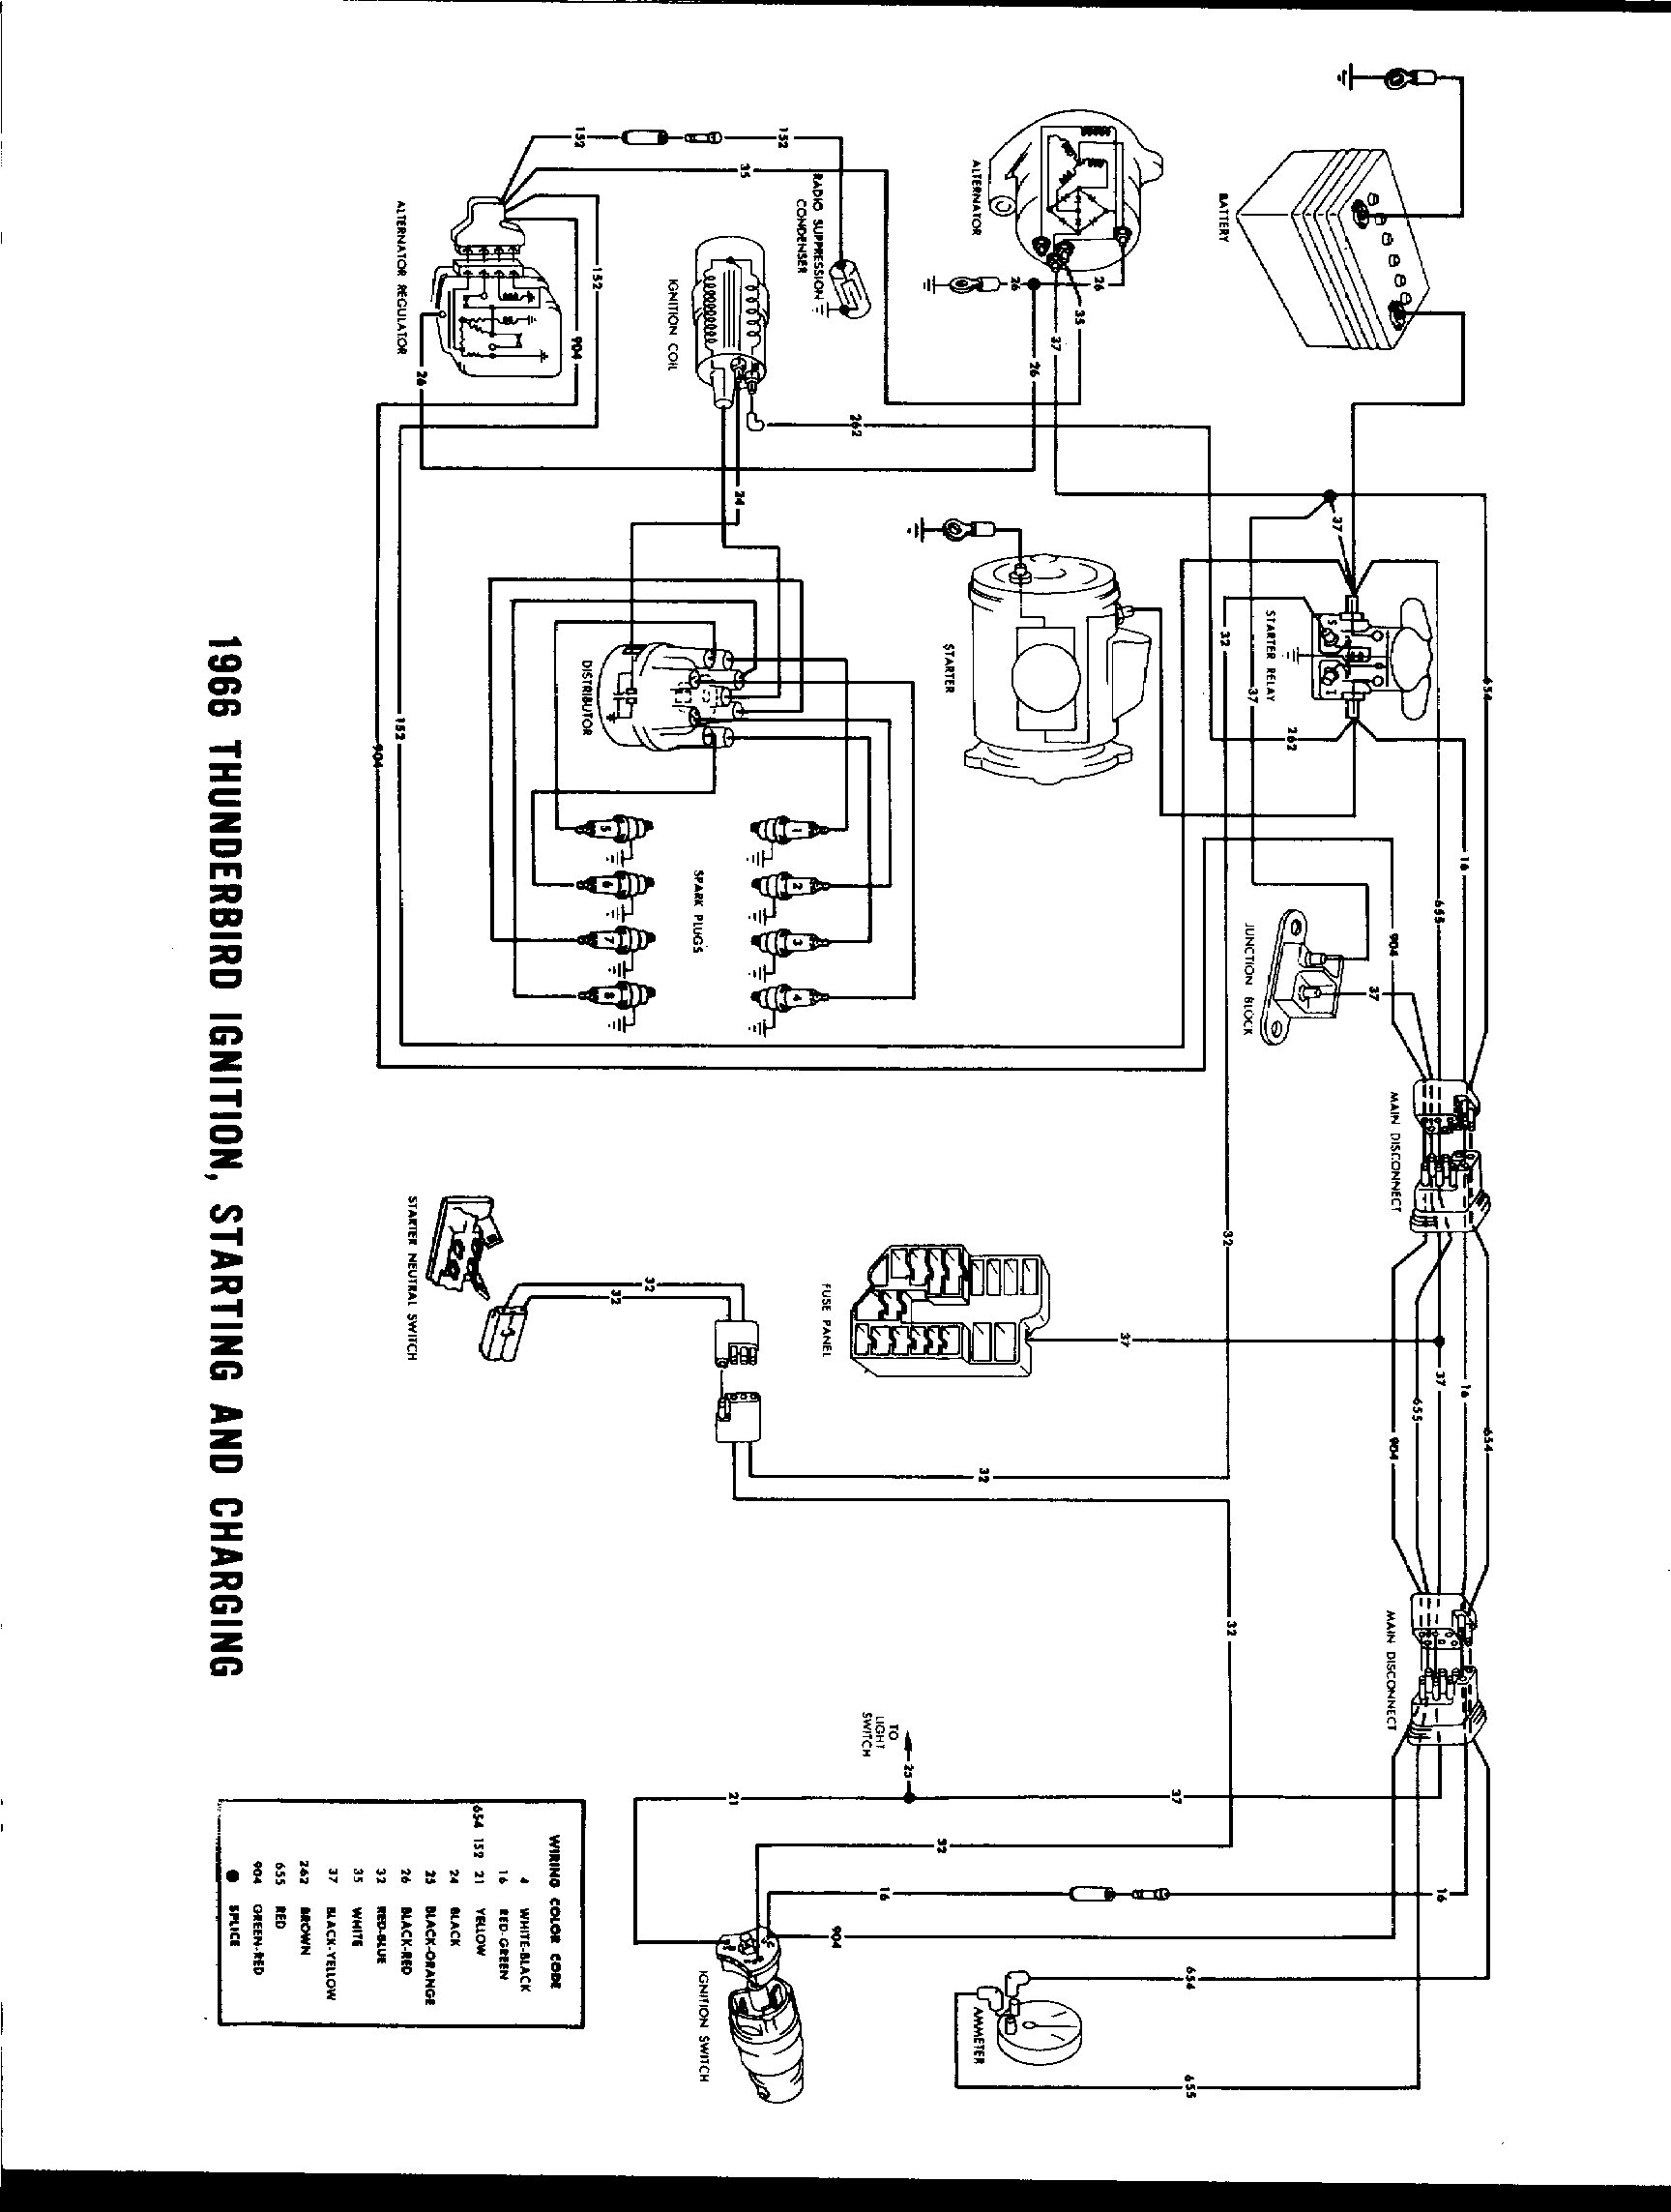 DIAGRAM] Renault Kangoo Towbar Wiring Diagram FULL Version HD Quality Wiring  Diagram - FUSICP8820.STUDIOBARTELLONI.ITstudiobartelloni.it